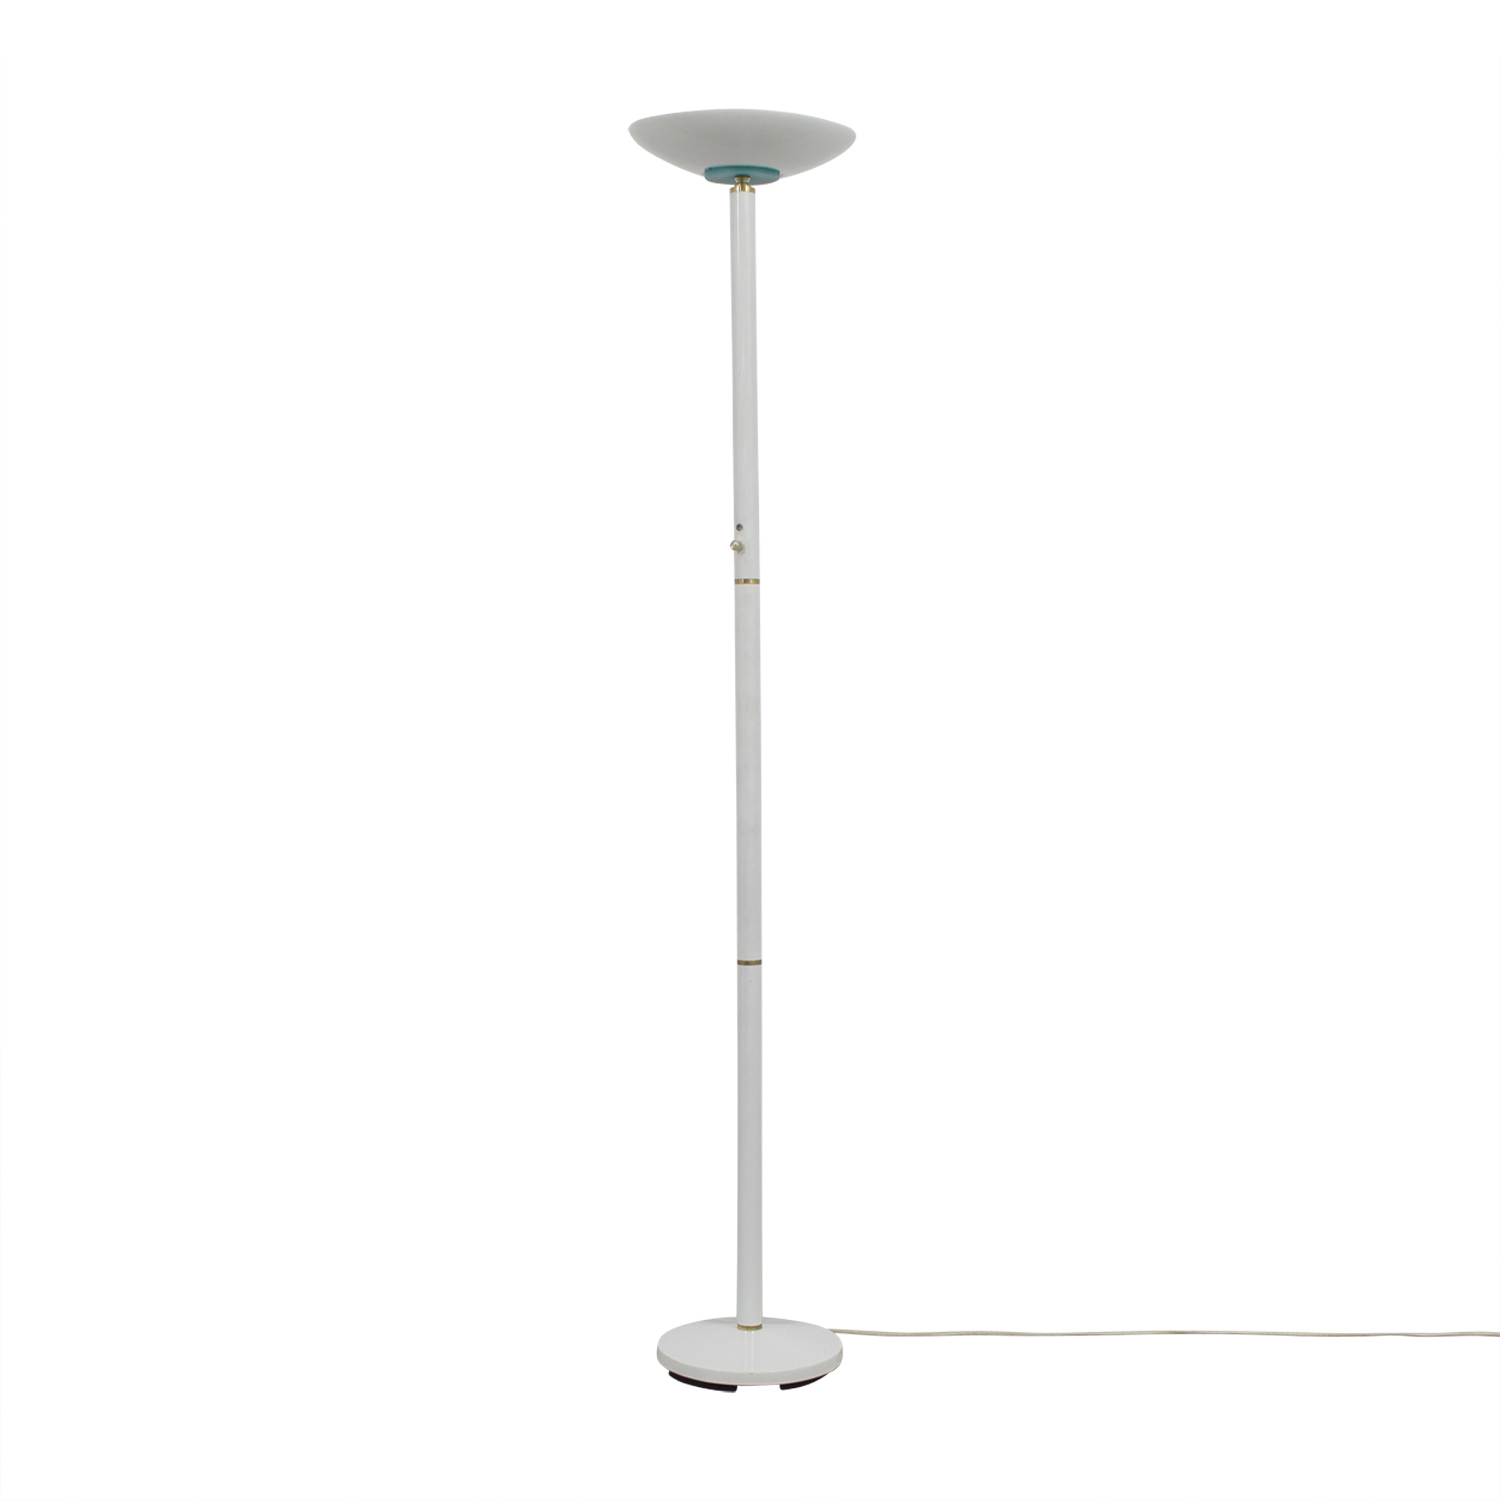 White Metal Floor Lamp / Decor